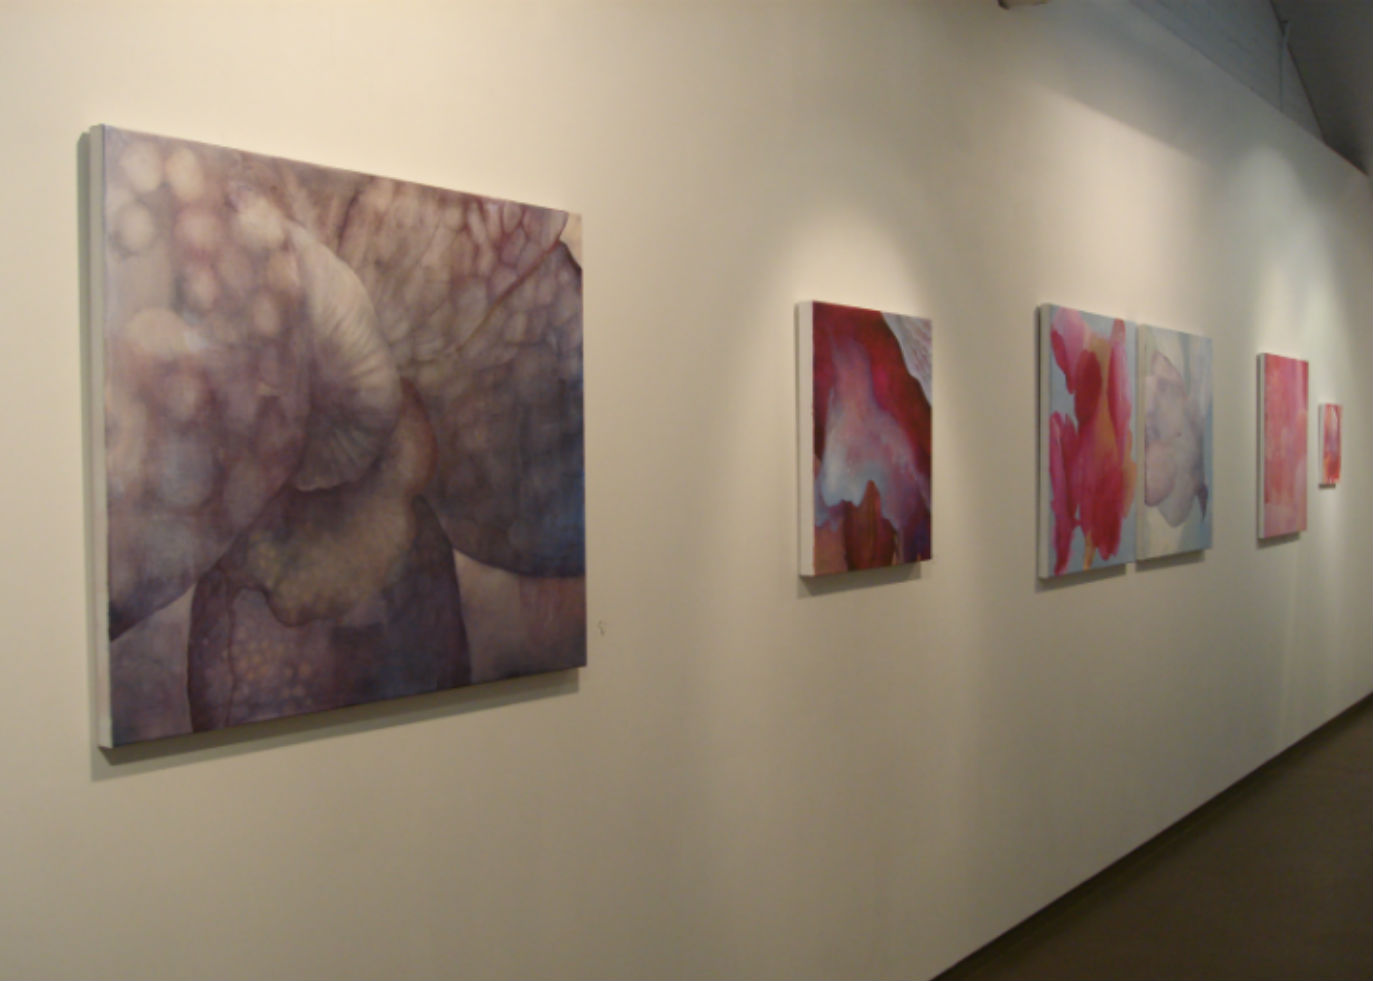 We are as clouds (installation view #1)